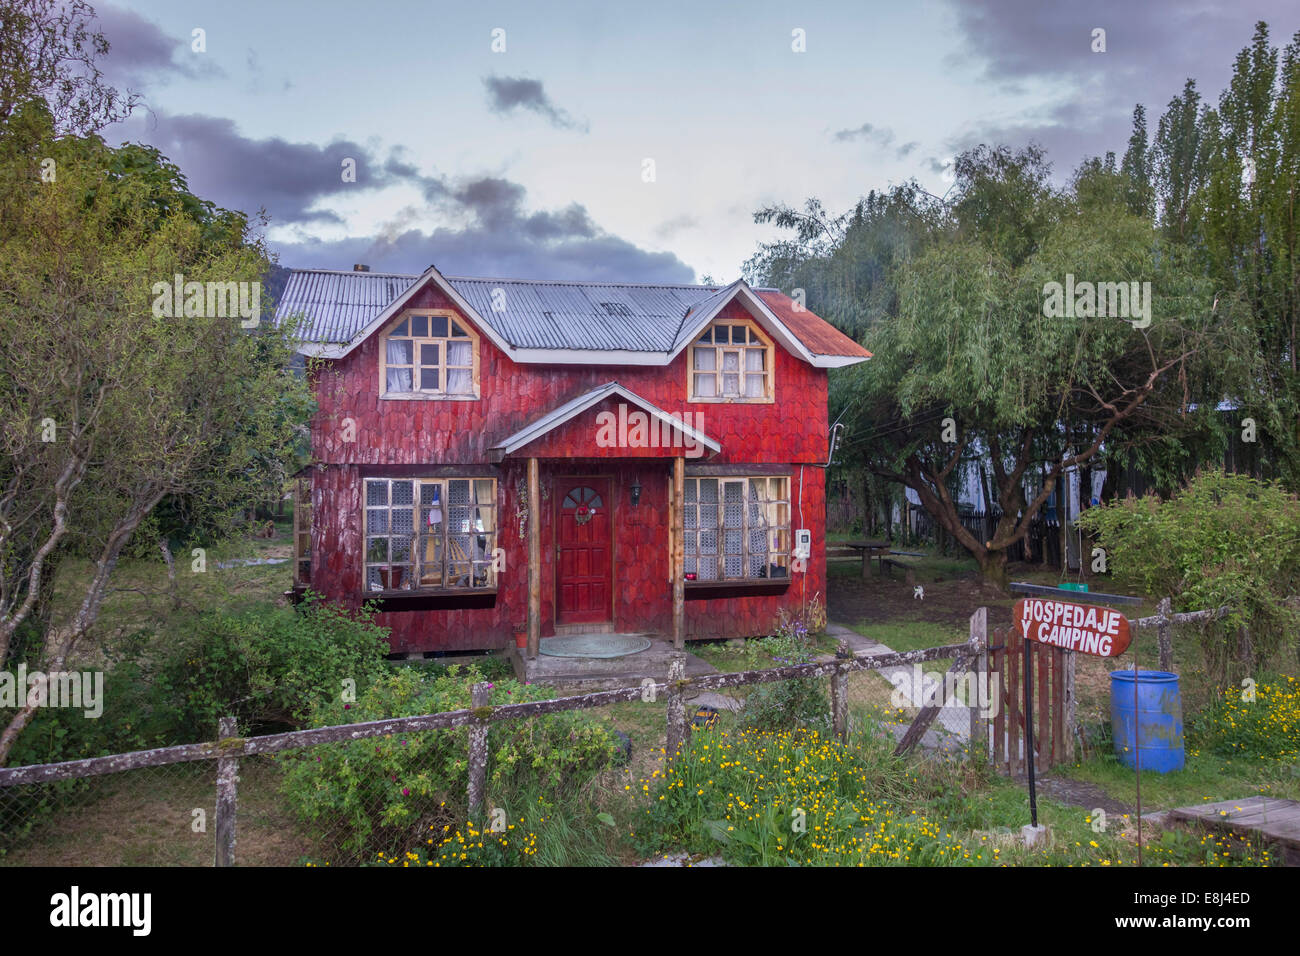 Simple wooden houses, Puerto Puyuhuapi, Aysén, Chile - Stock Image